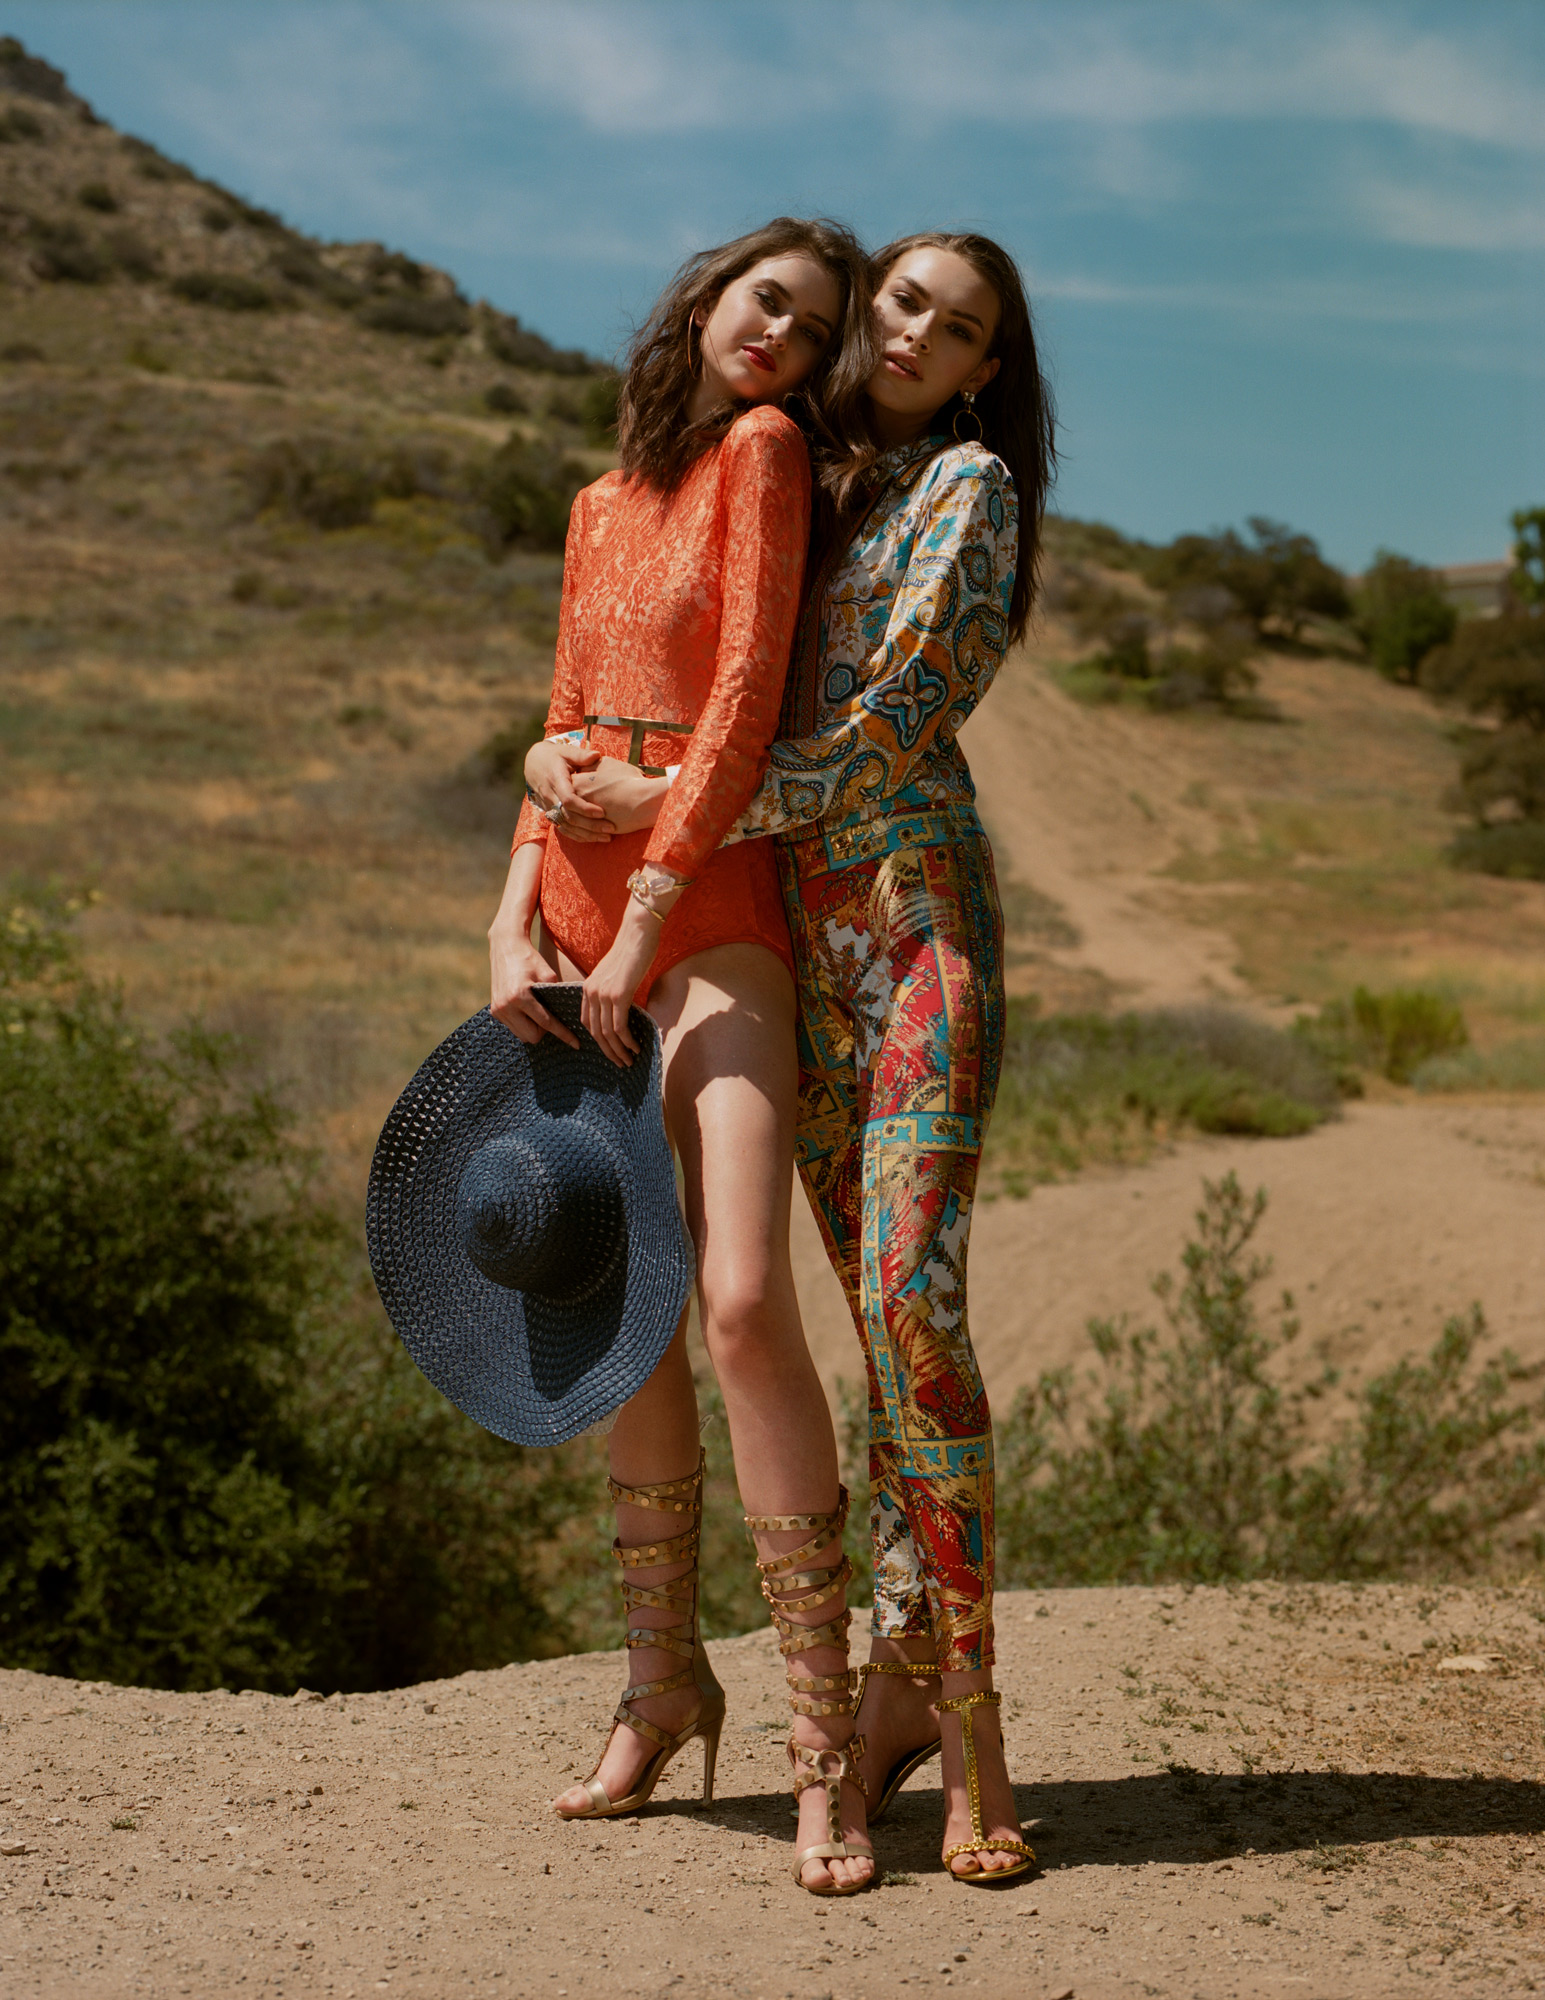 Into The Wild, Cristal Chavez and Emily Rogers in fashion editorial for Promo Magazine by Ioannis Koussertari